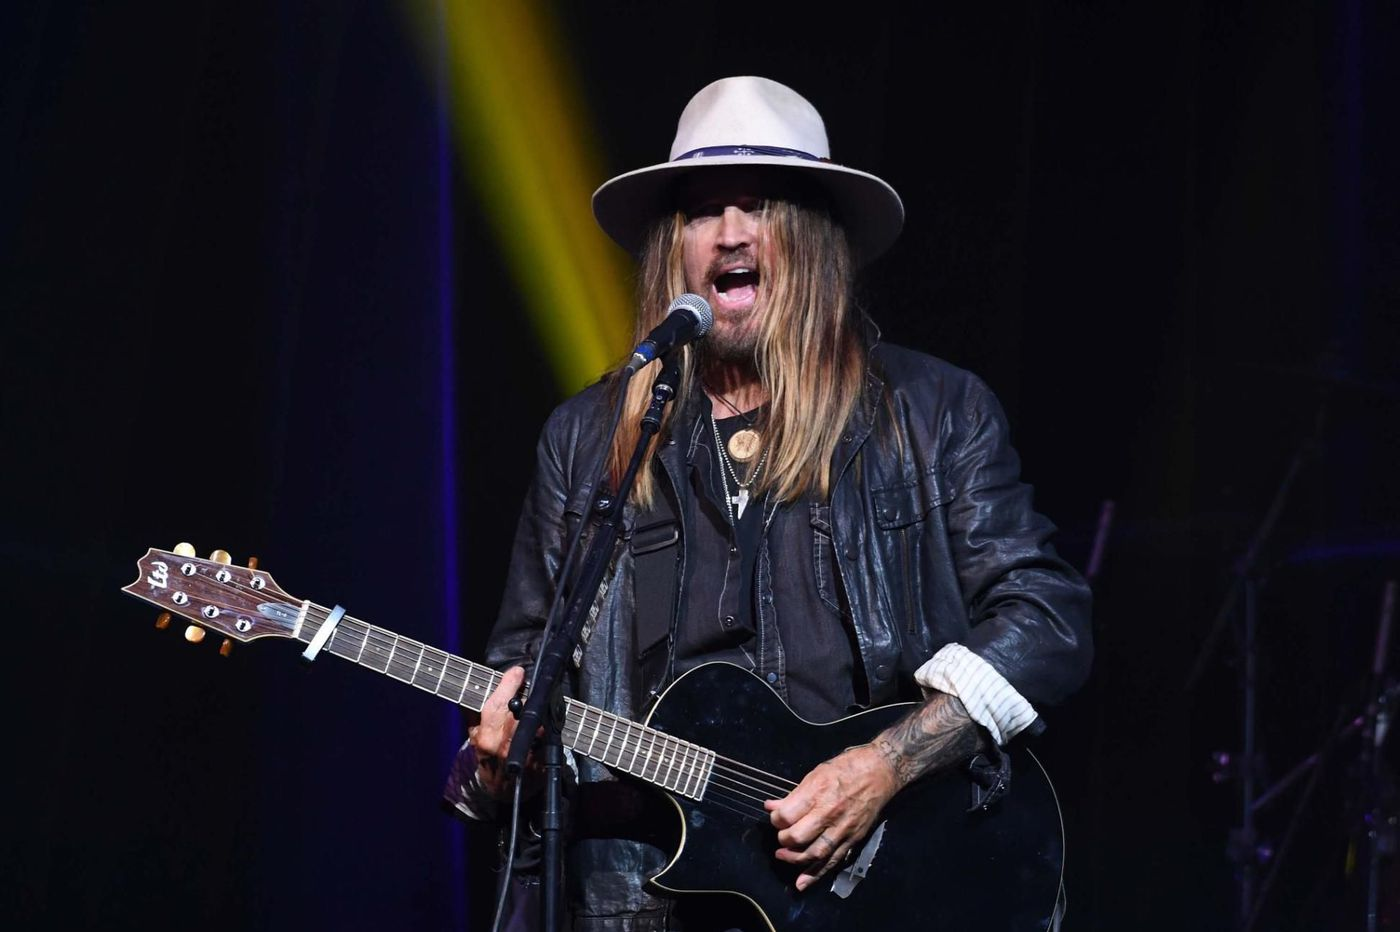 Billy Ray Cyrus makes 'Old Town Road' his own at the Borgata | Concert review